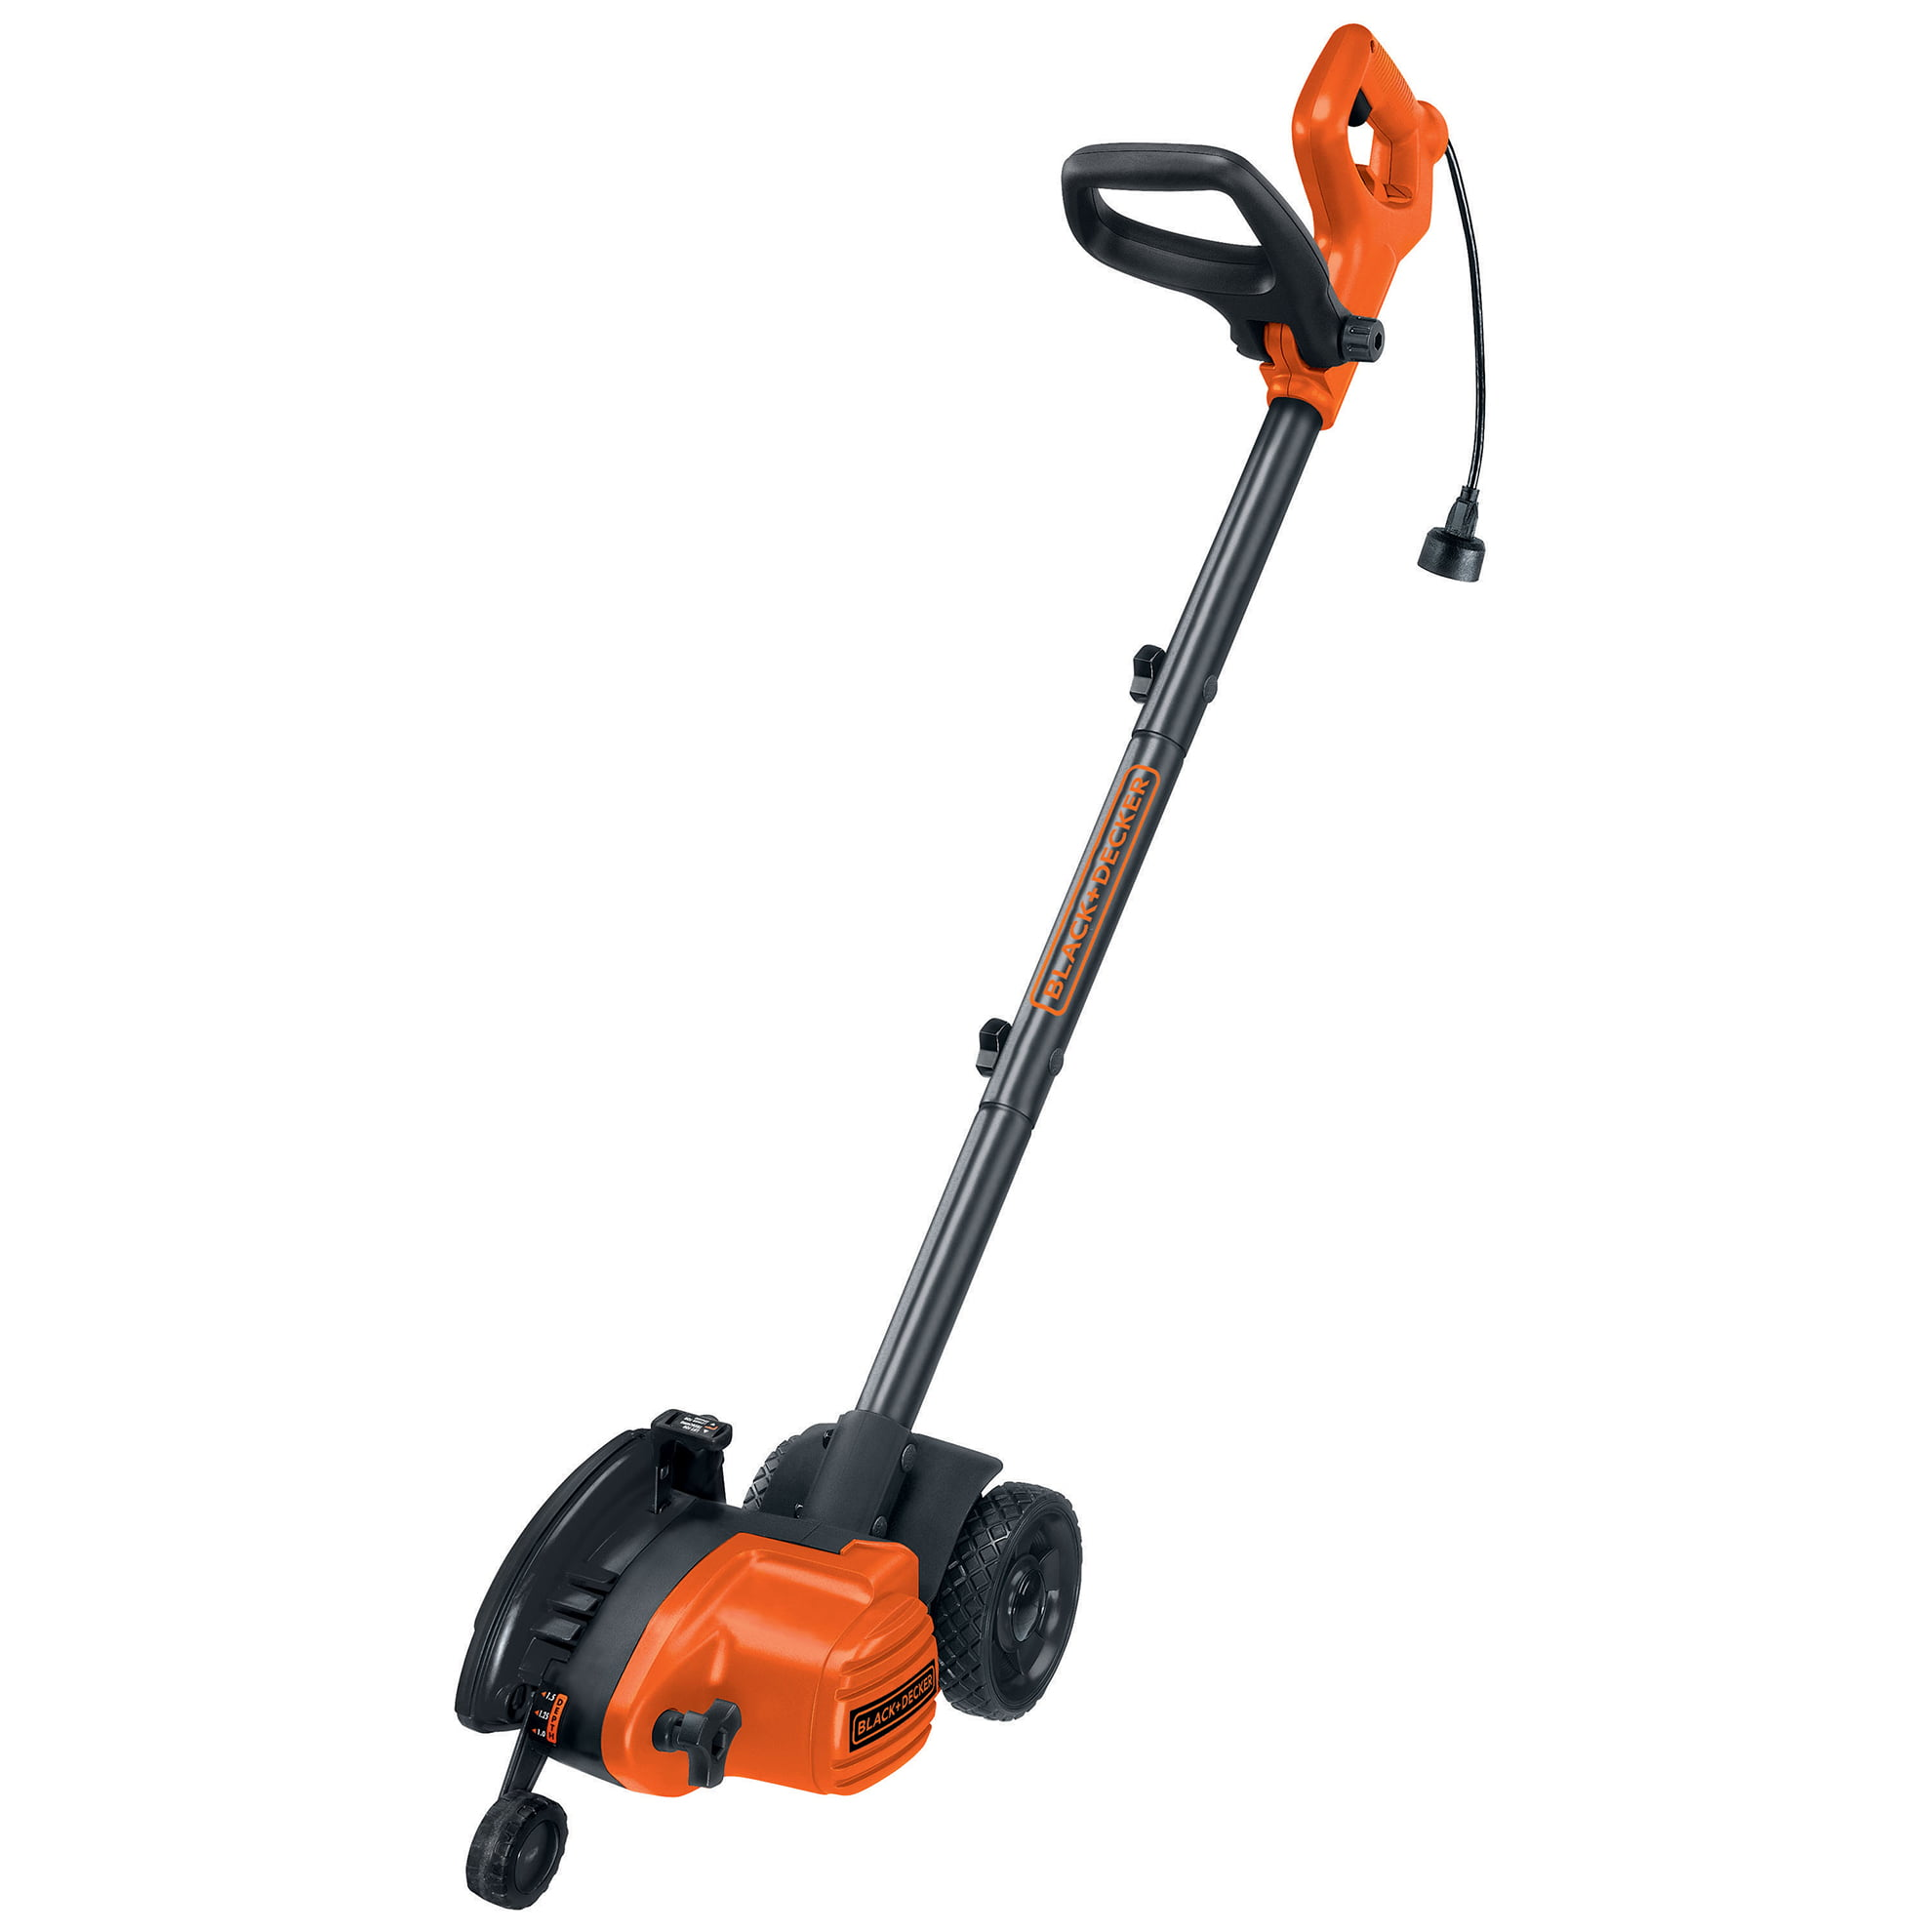 Black & Decker LE750 12 Amp 2-N-1 Landscaper Edger & Trencher by Stanley Black & Decker